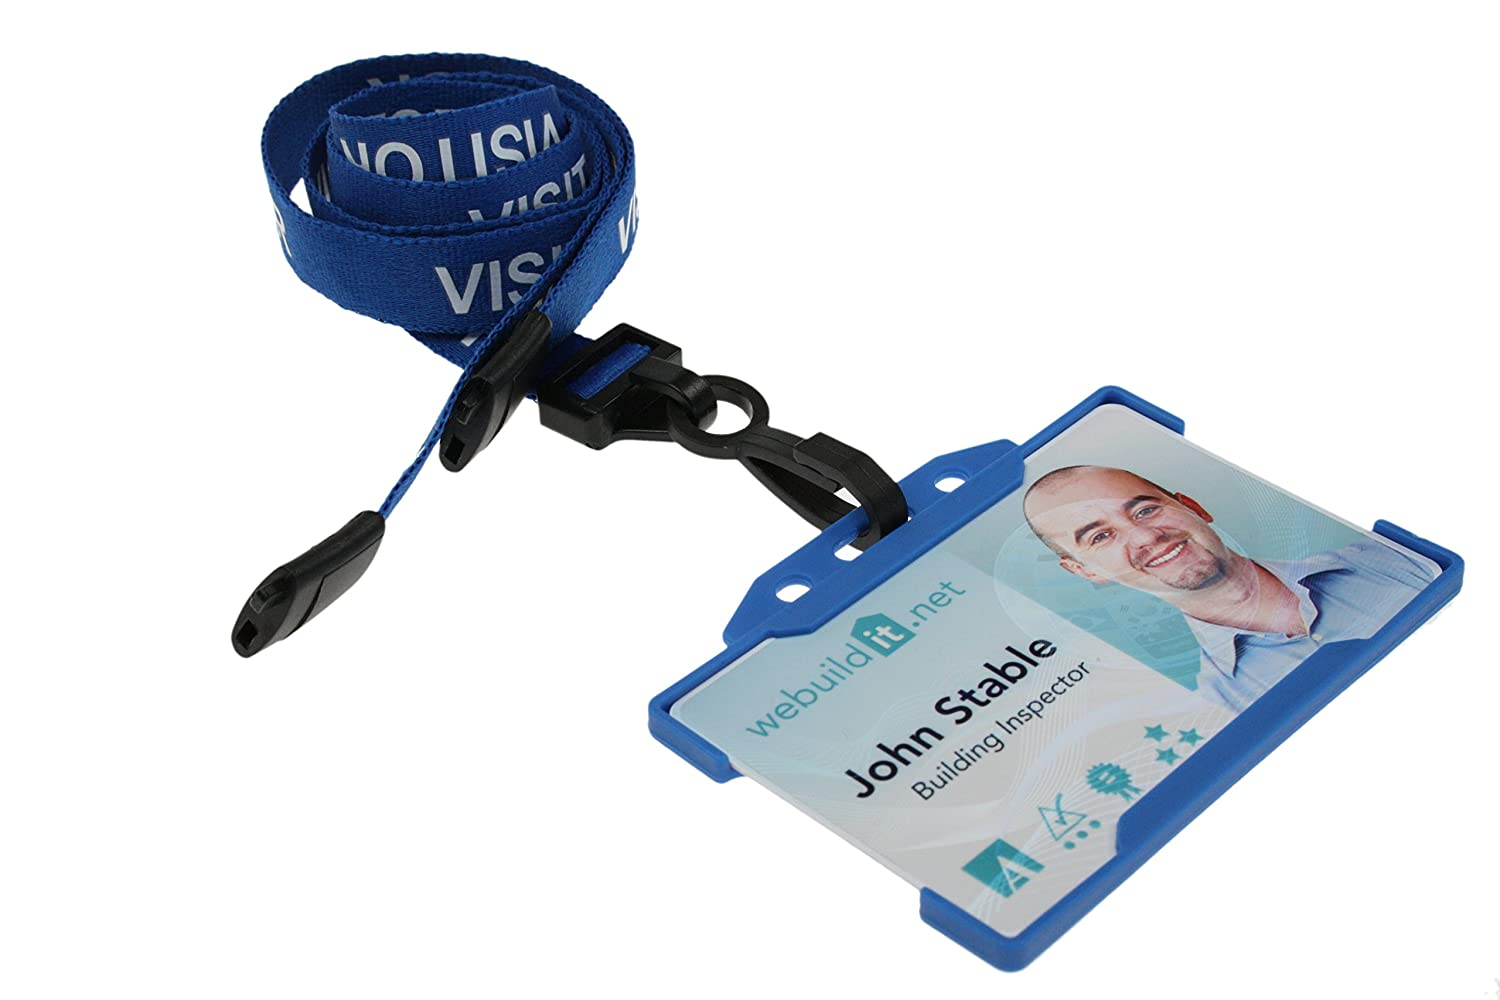 Kestronics/® Blue Visitor 15mm Lanyard with Safety Breakaway DOUBLE SIDED cardholder